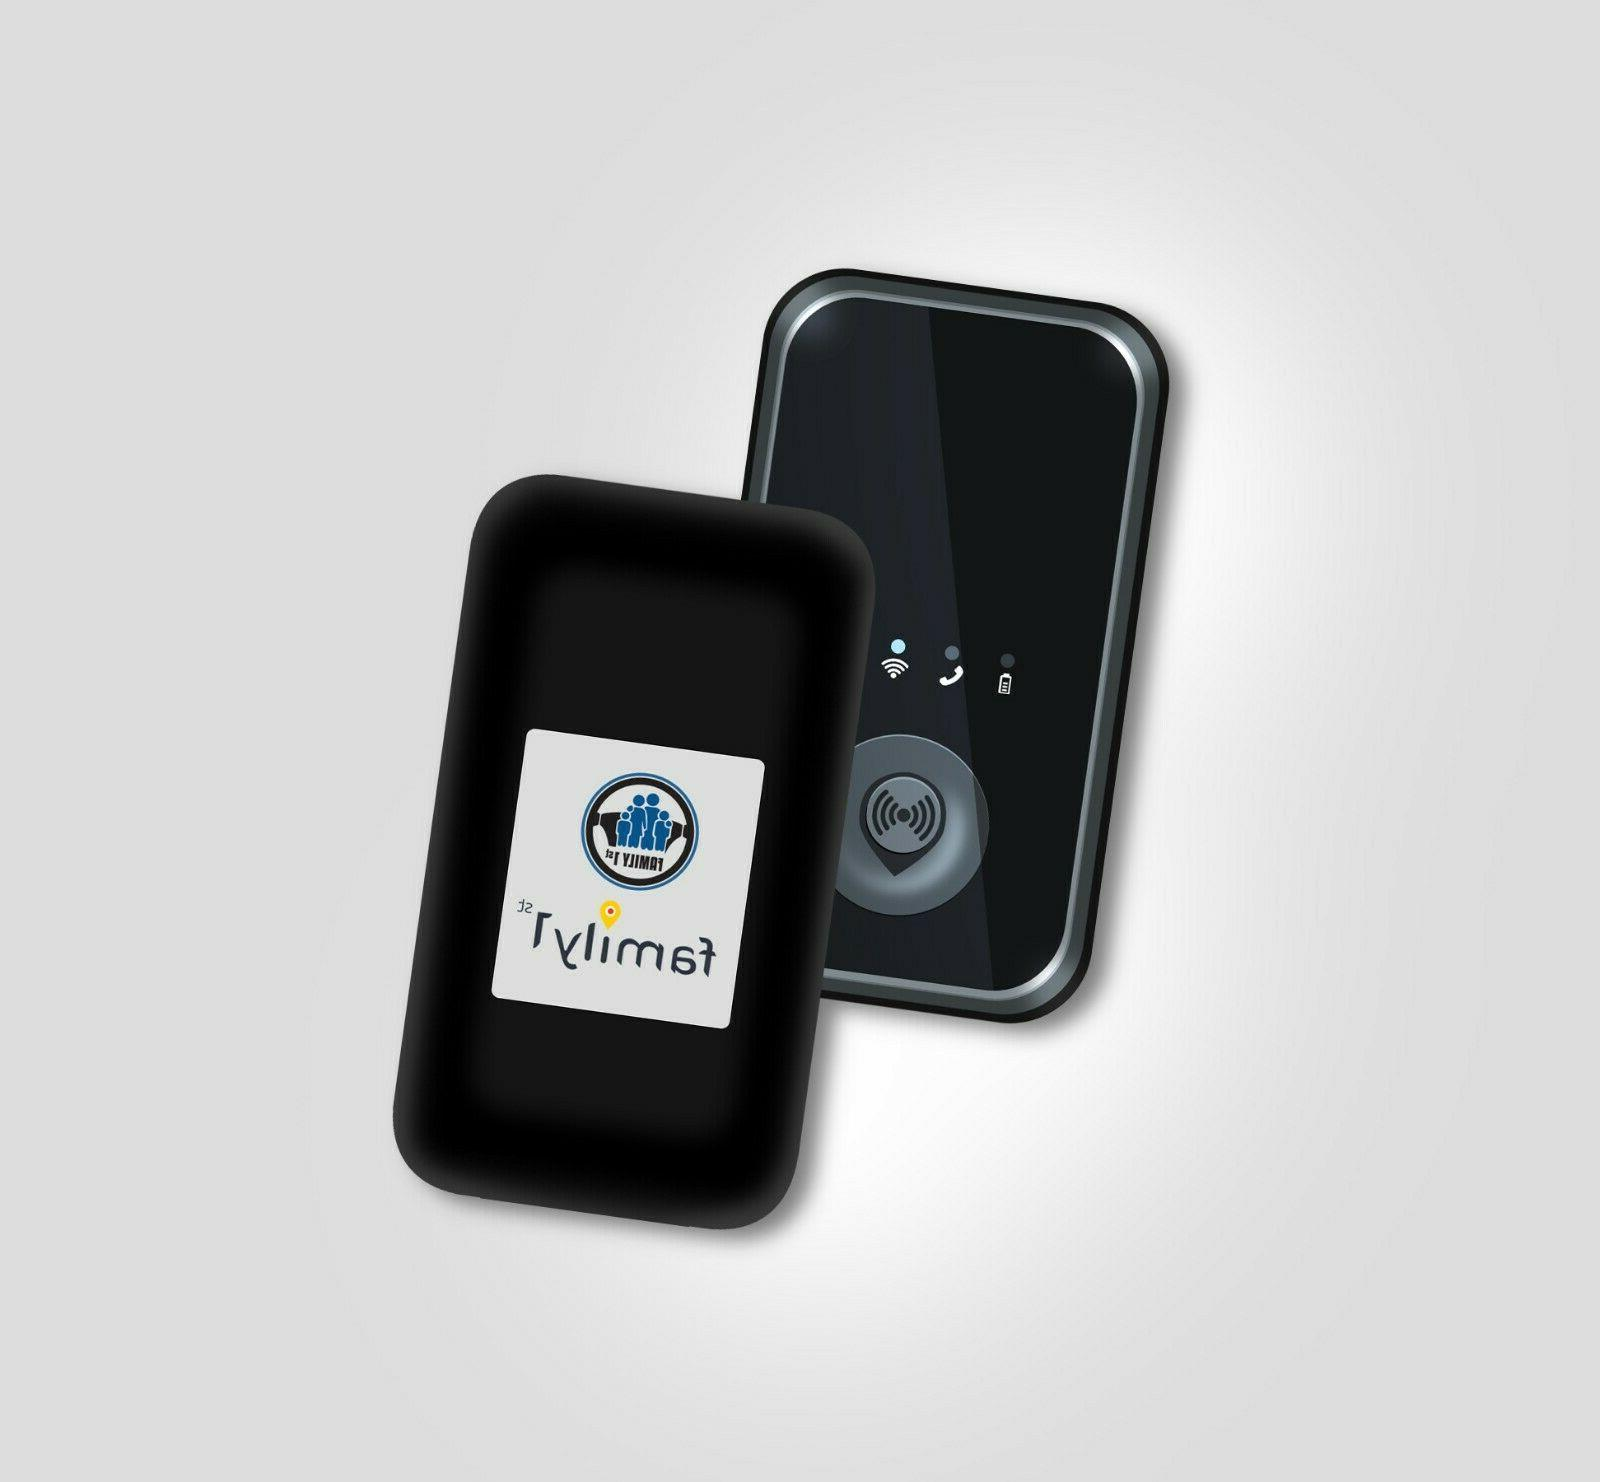 Family1st 4G LTE Tracker- Compact, Portable, Tracking